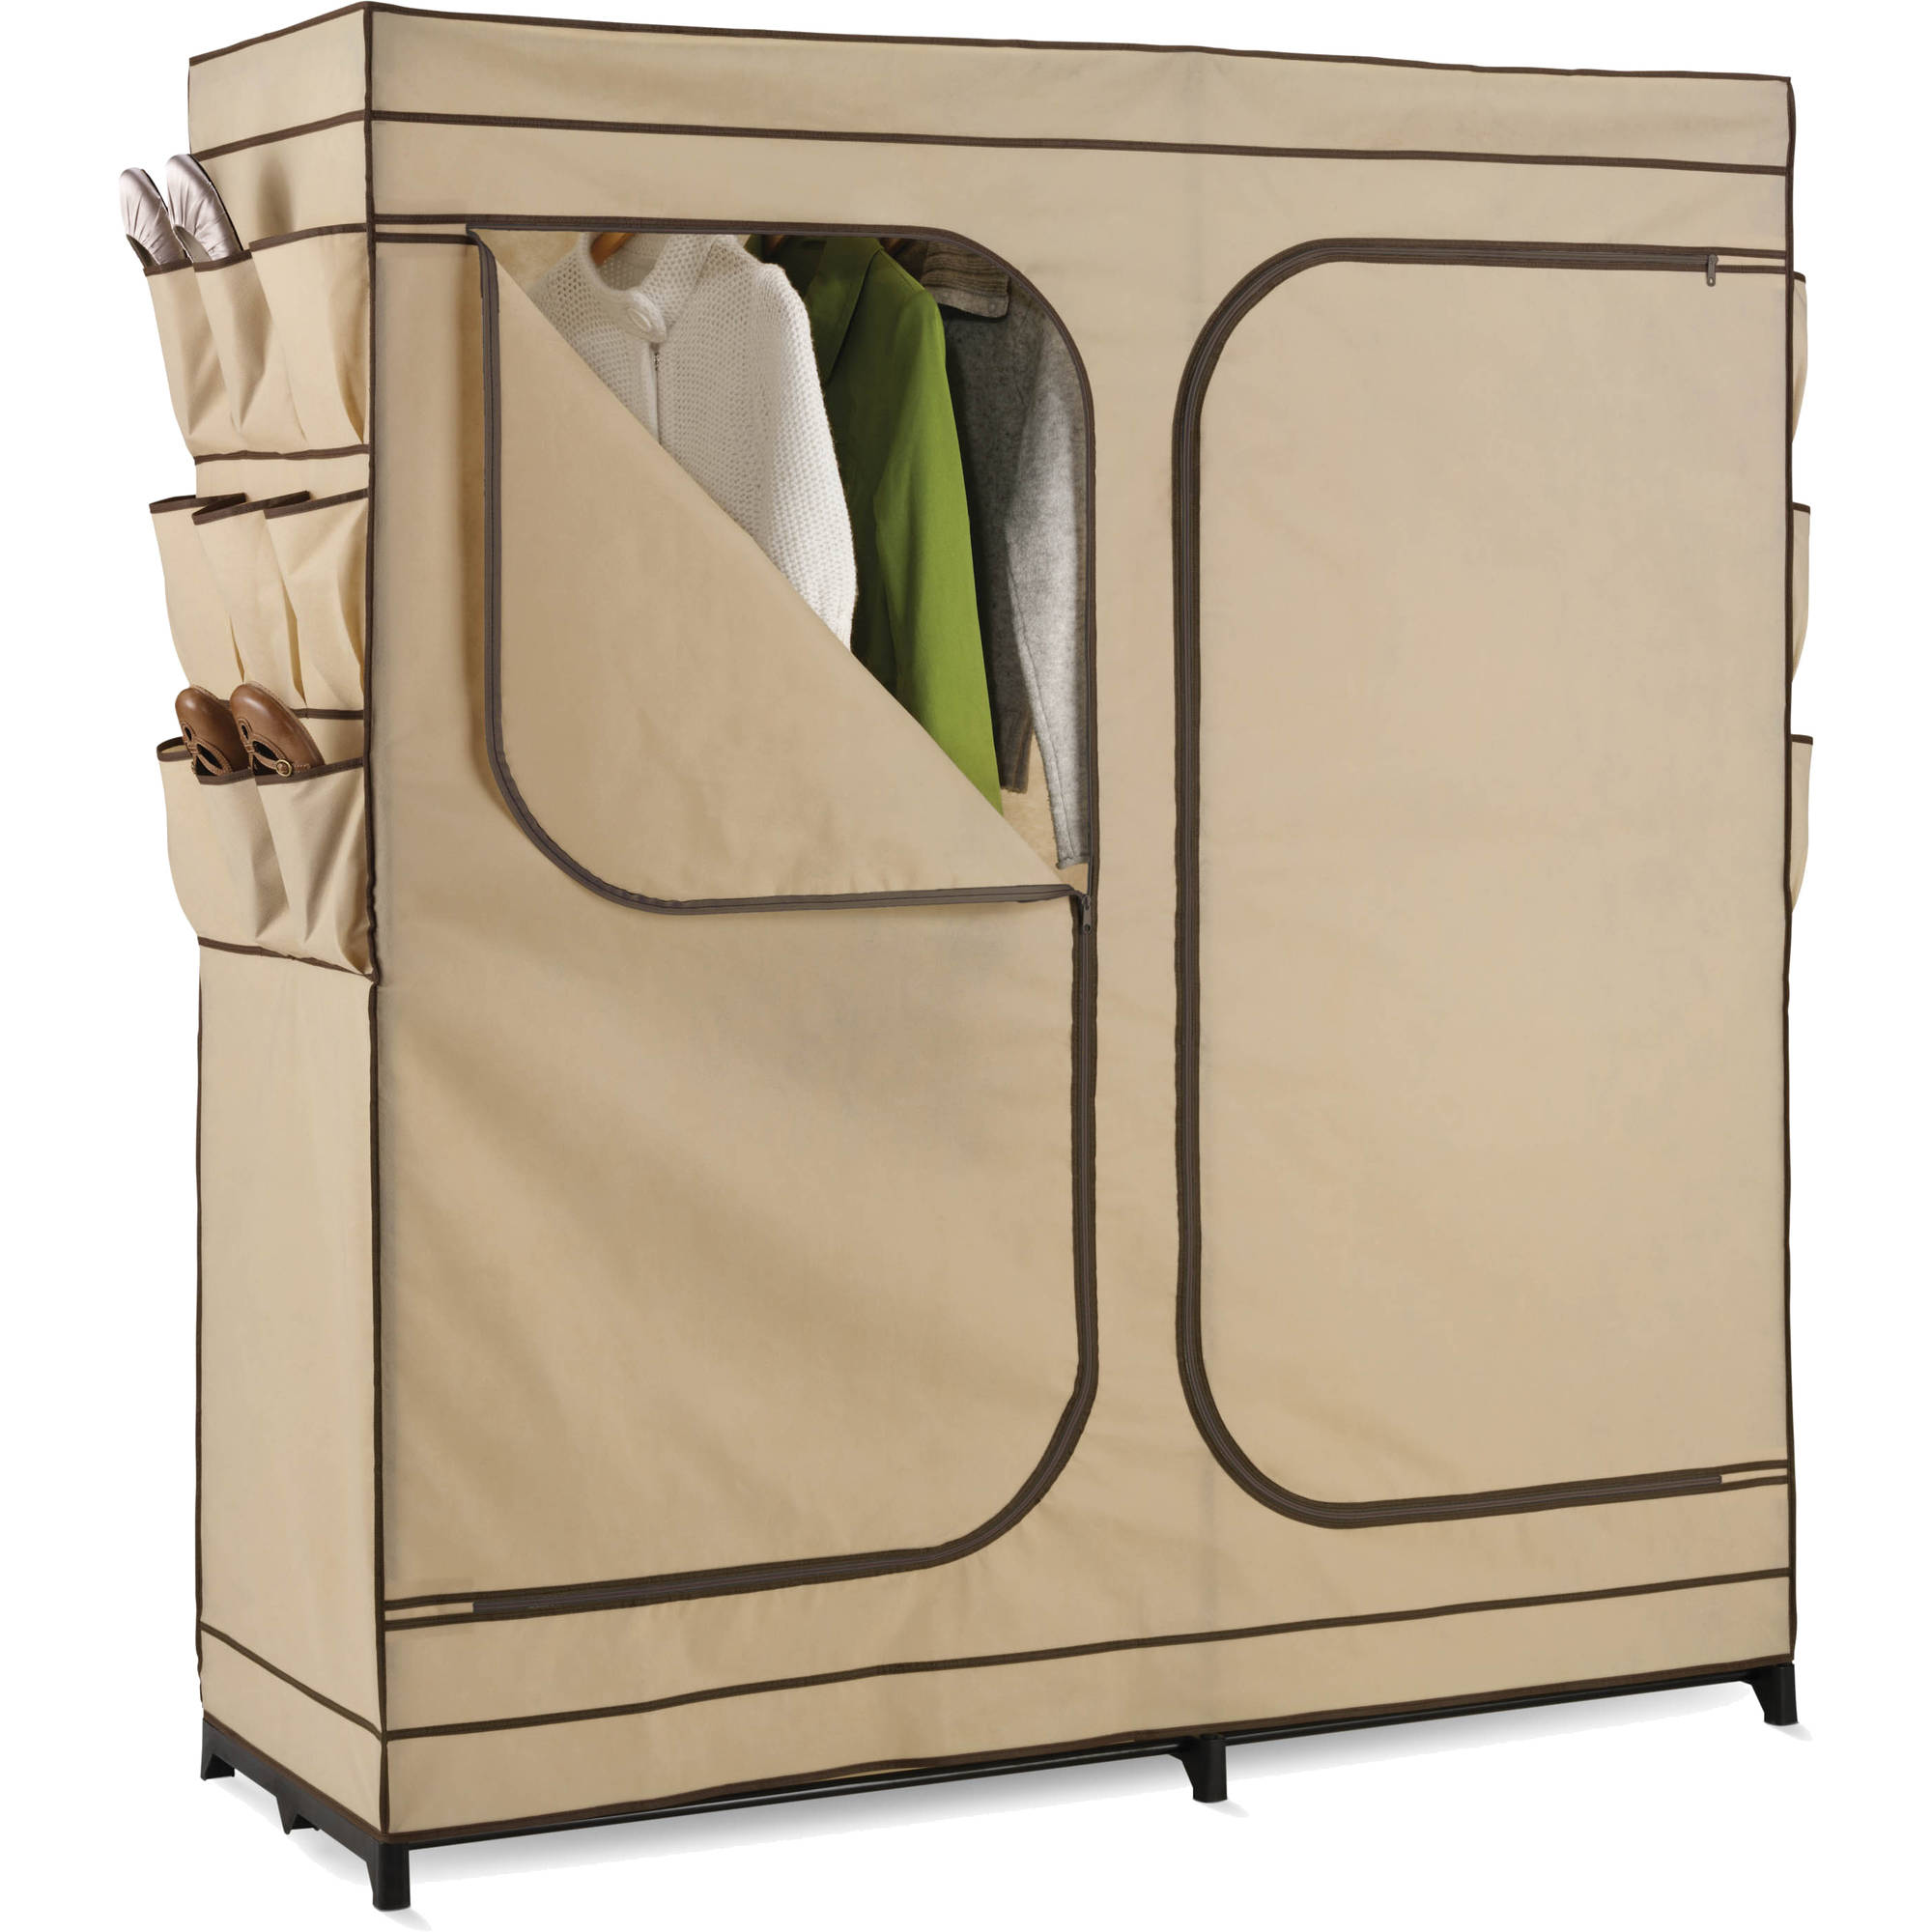 "Honey-Can-Do 60"" Double Door Storage Closet with Shoe Organizer, Khaki Brown Trim by Honey Can Do"